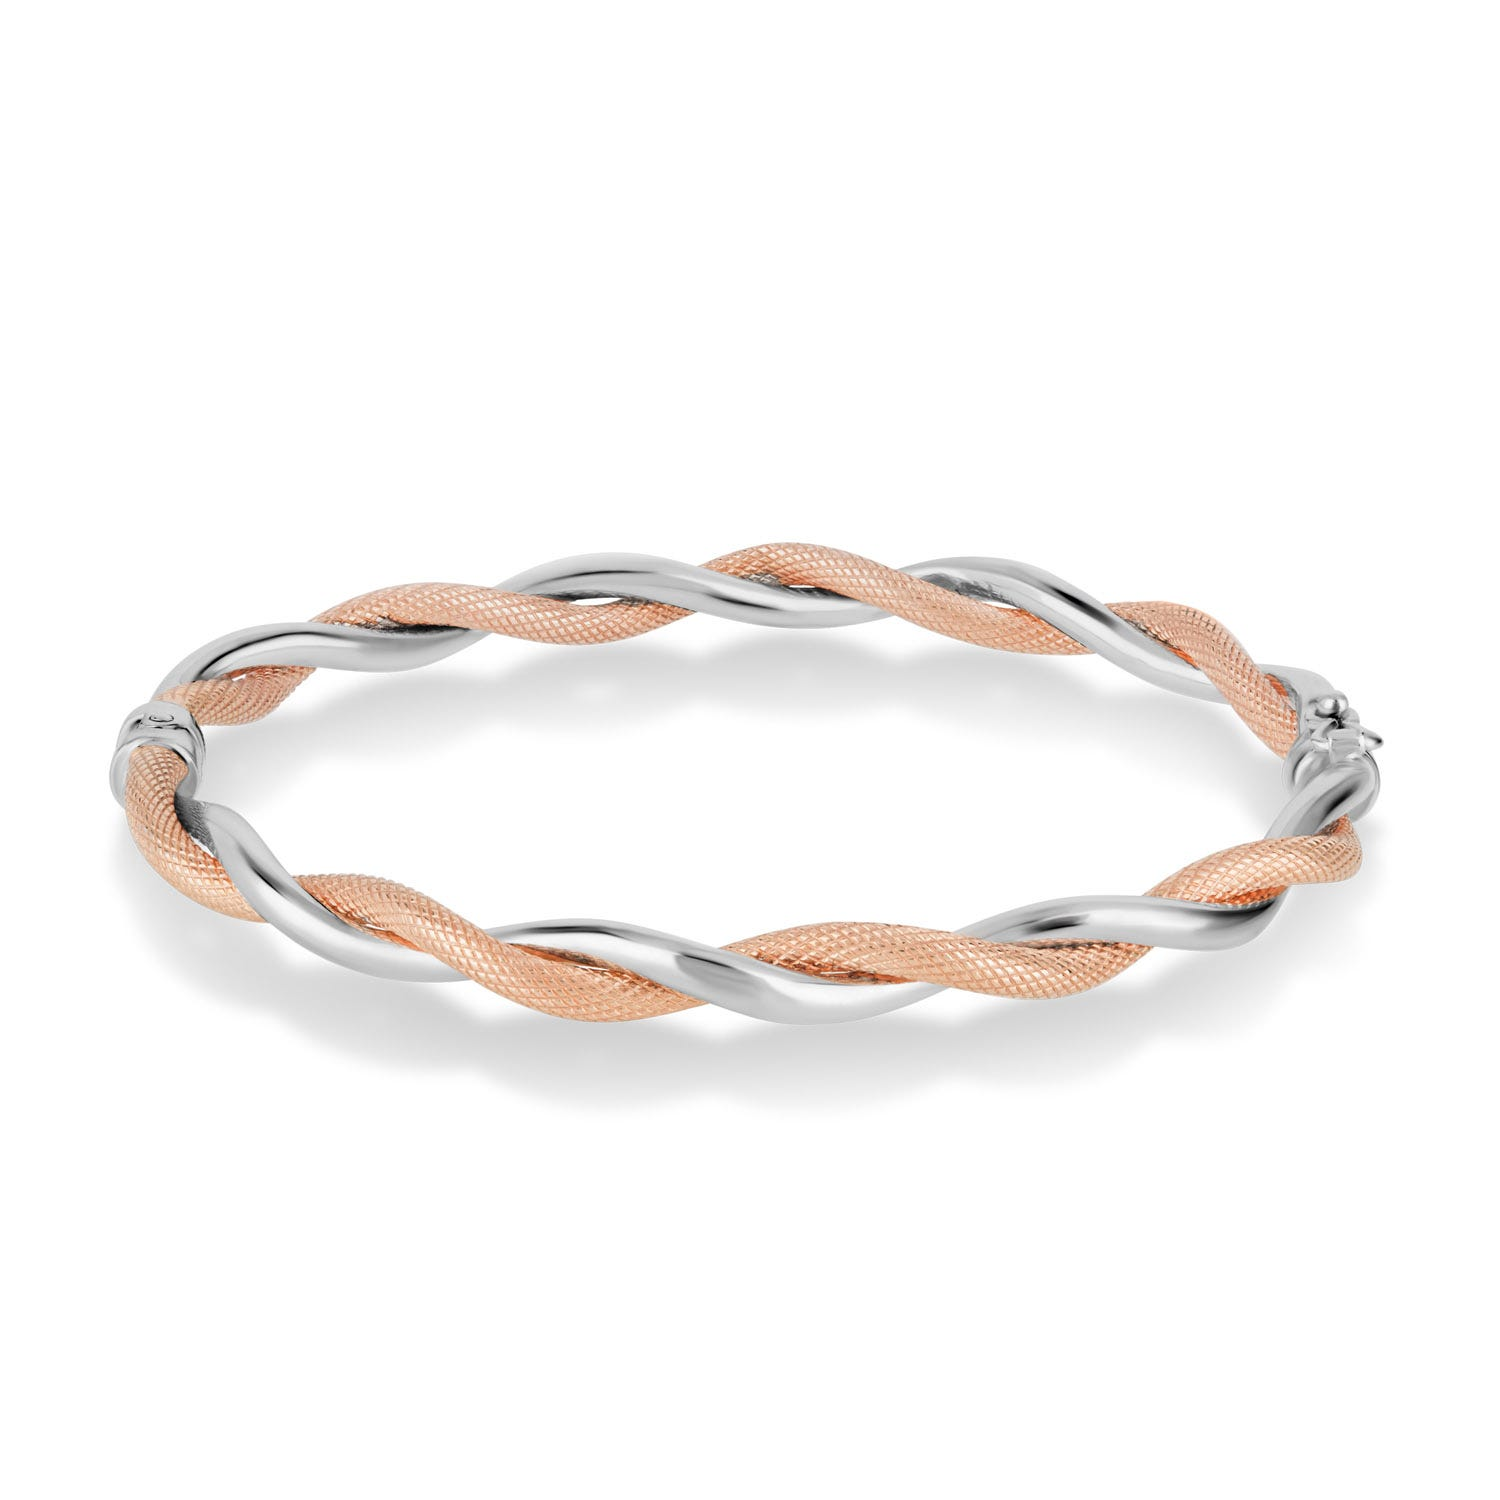 9ct White & Rose Gold Twist Texture Bangle